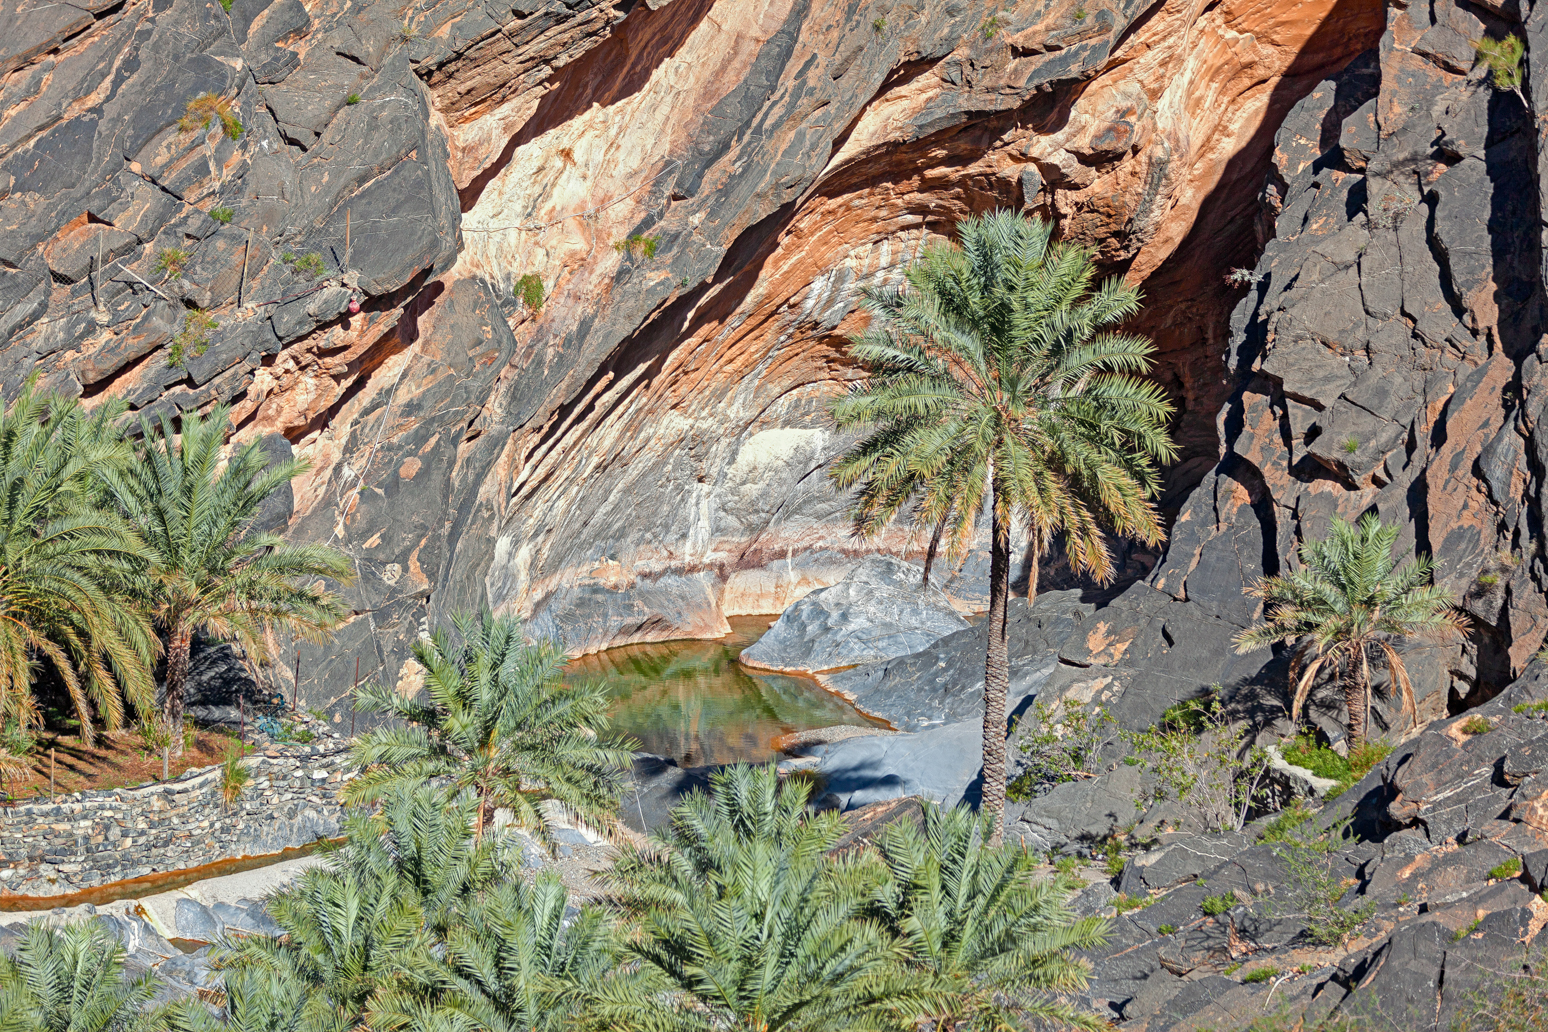 Wadi in Al Hajar Mountains